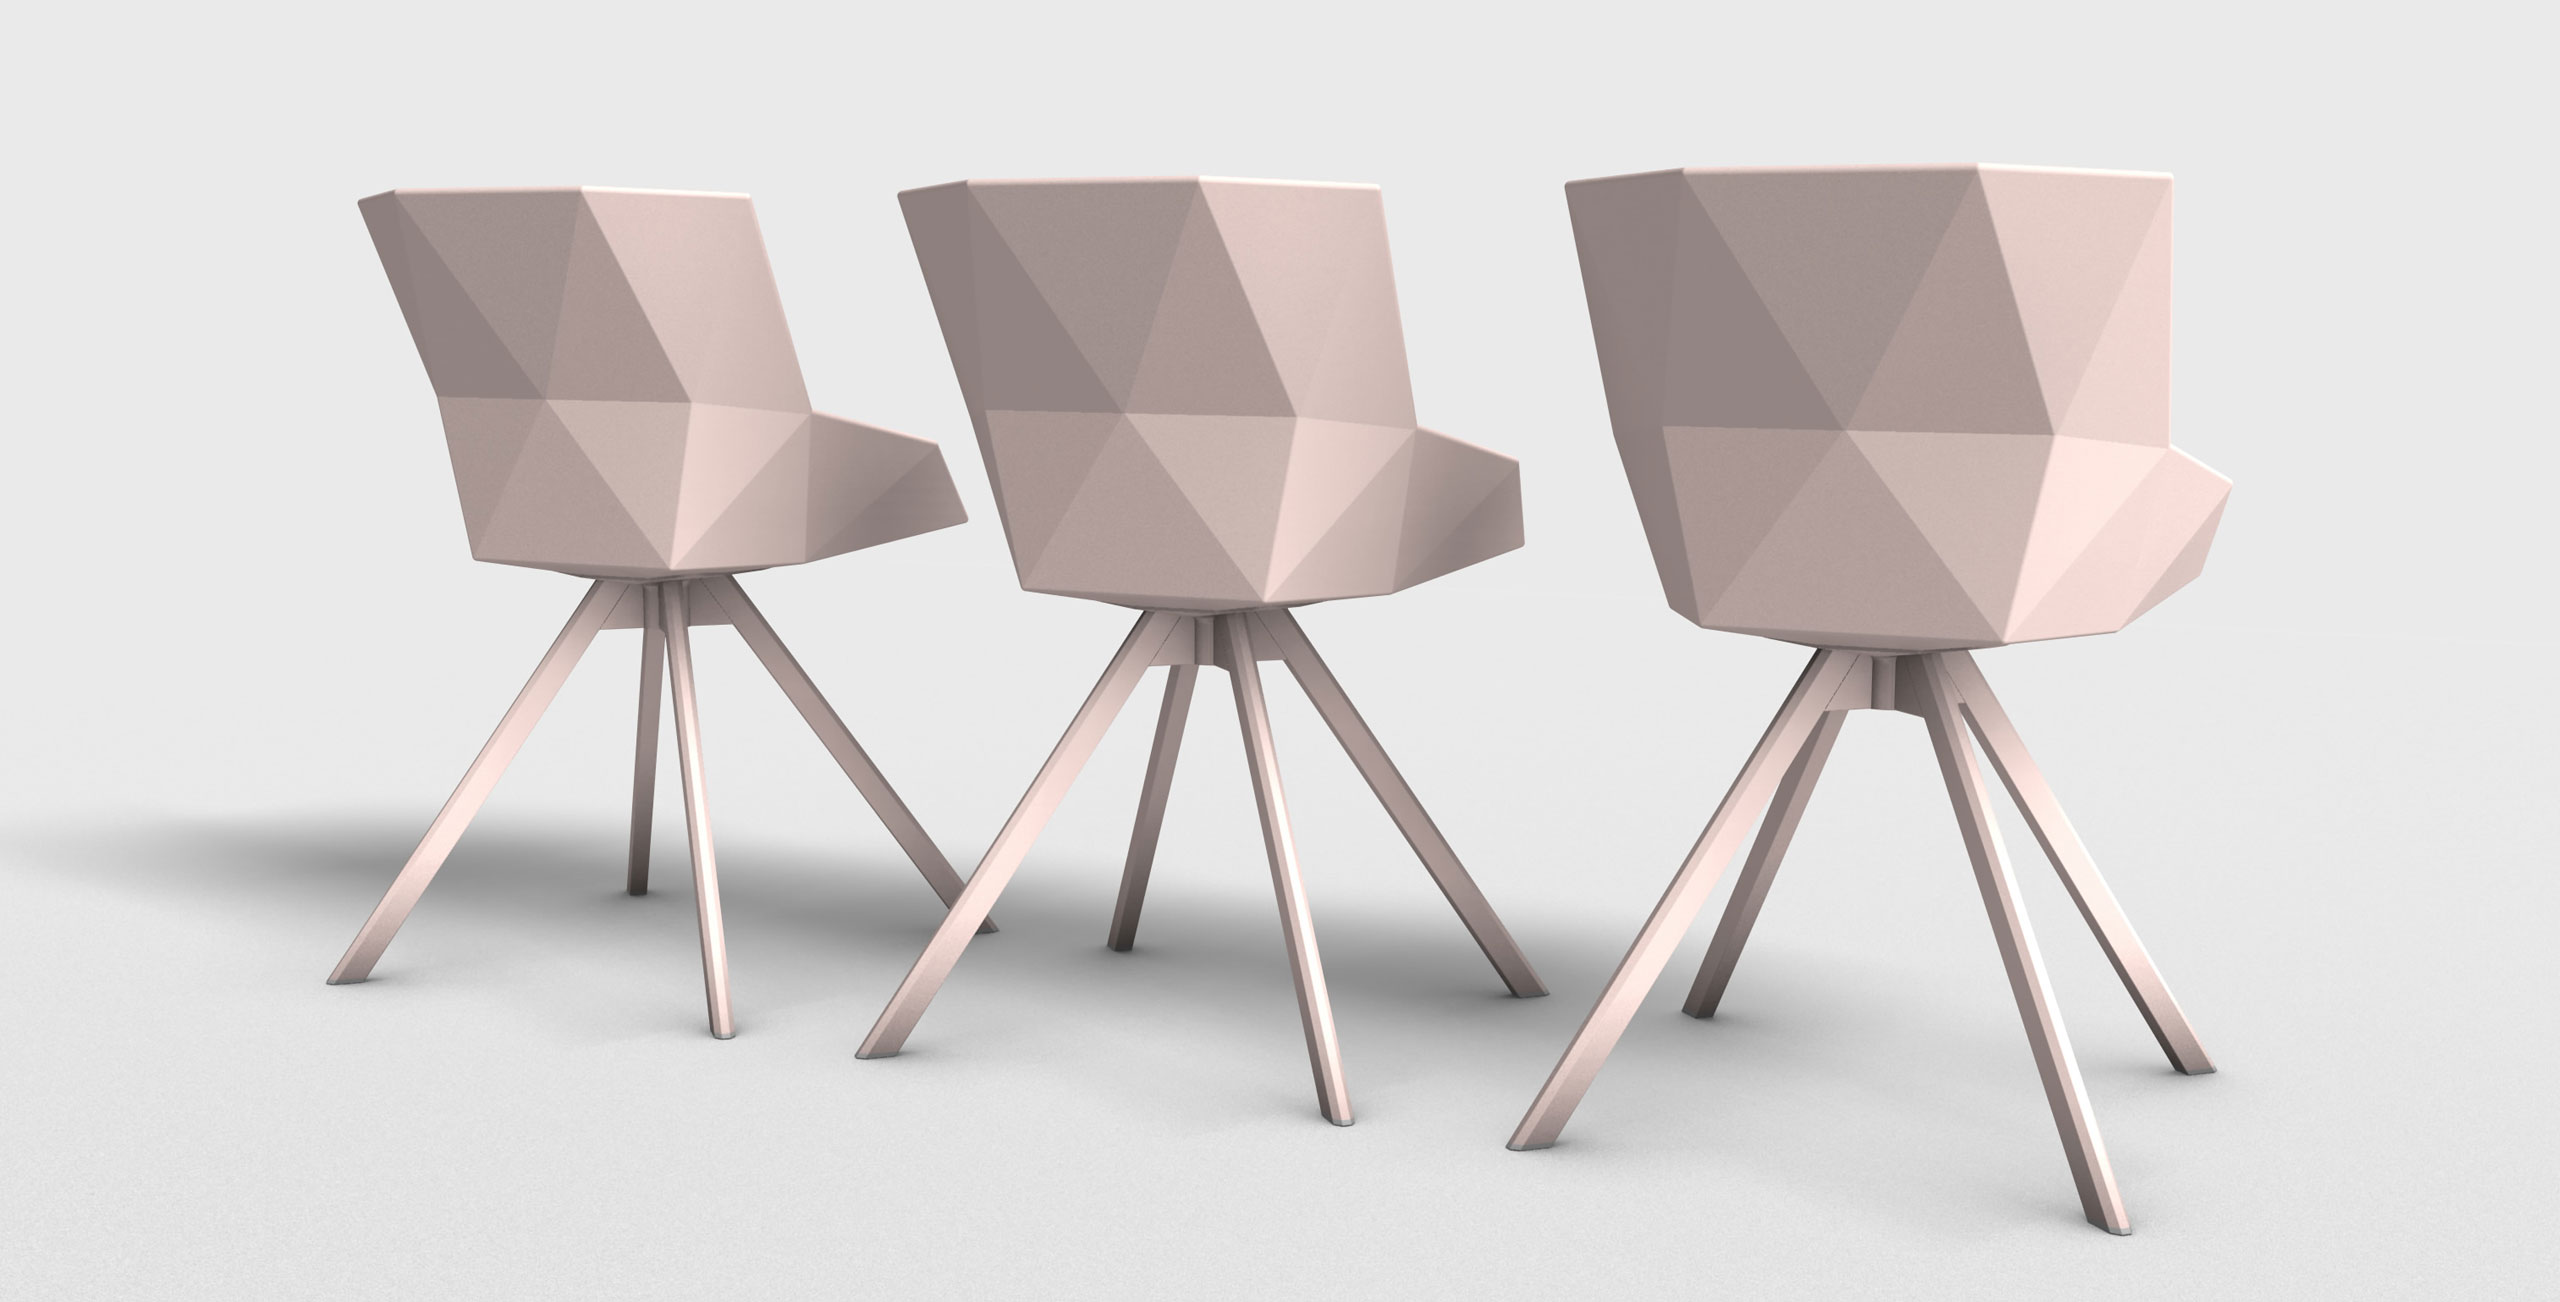 0129_Triangulated_chair_34.jpg